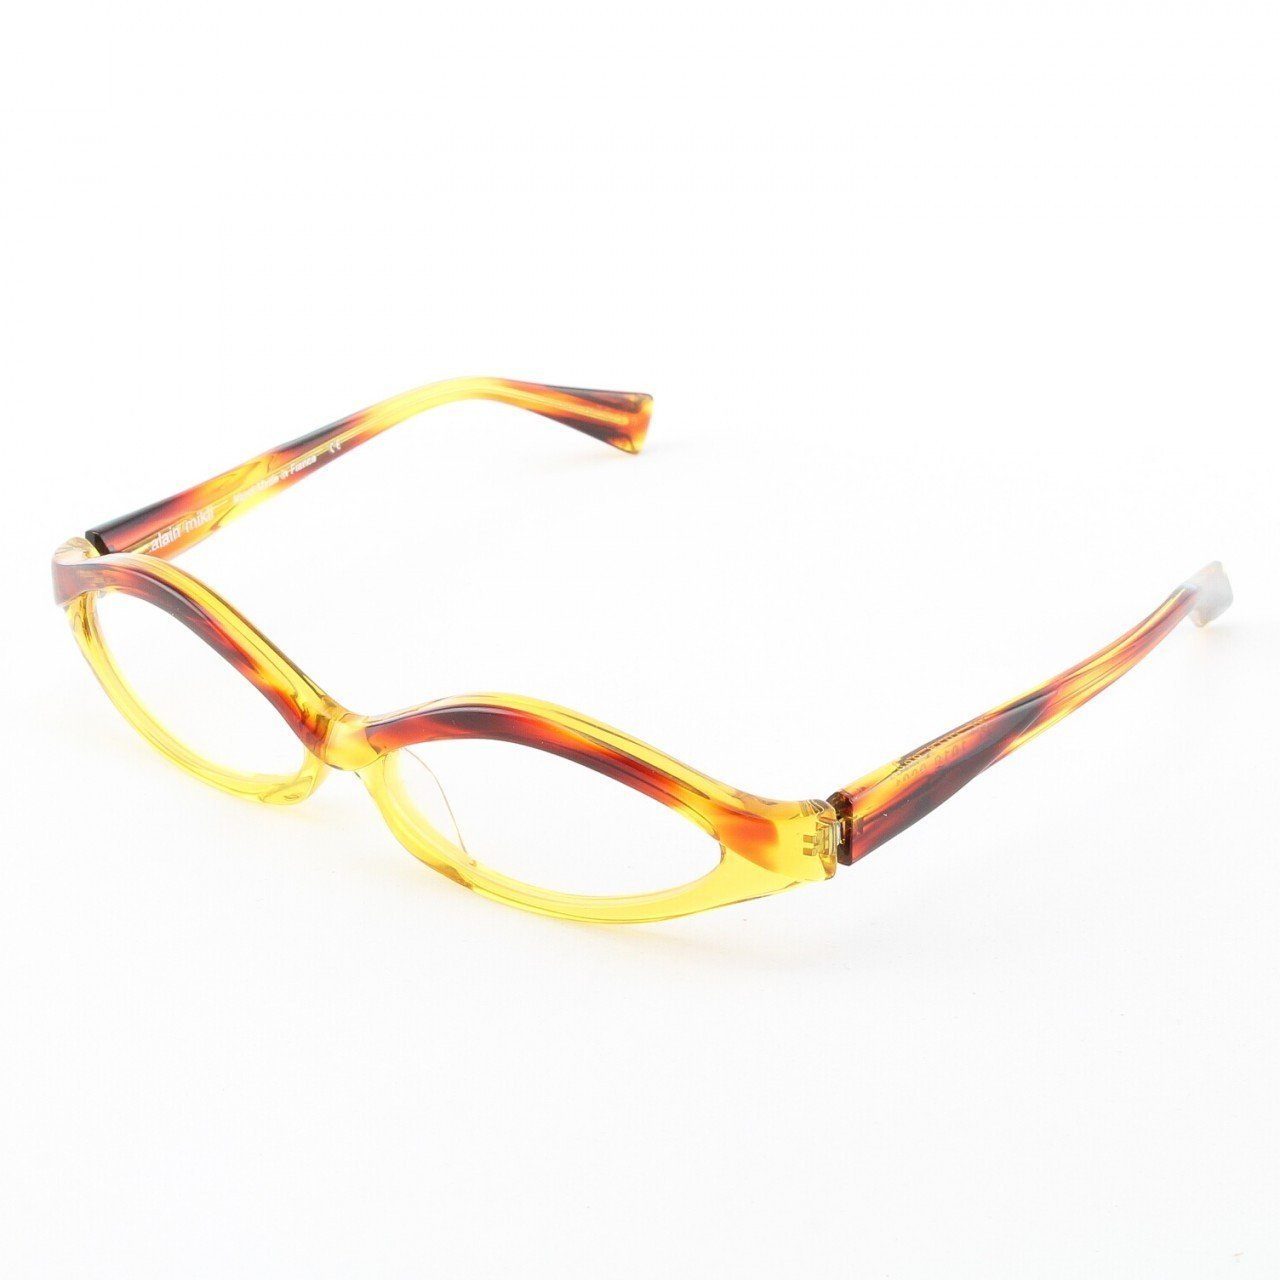 Alain Mikli Eyeglasses AL1018 Col. 1 Mottled Amber and Yellow